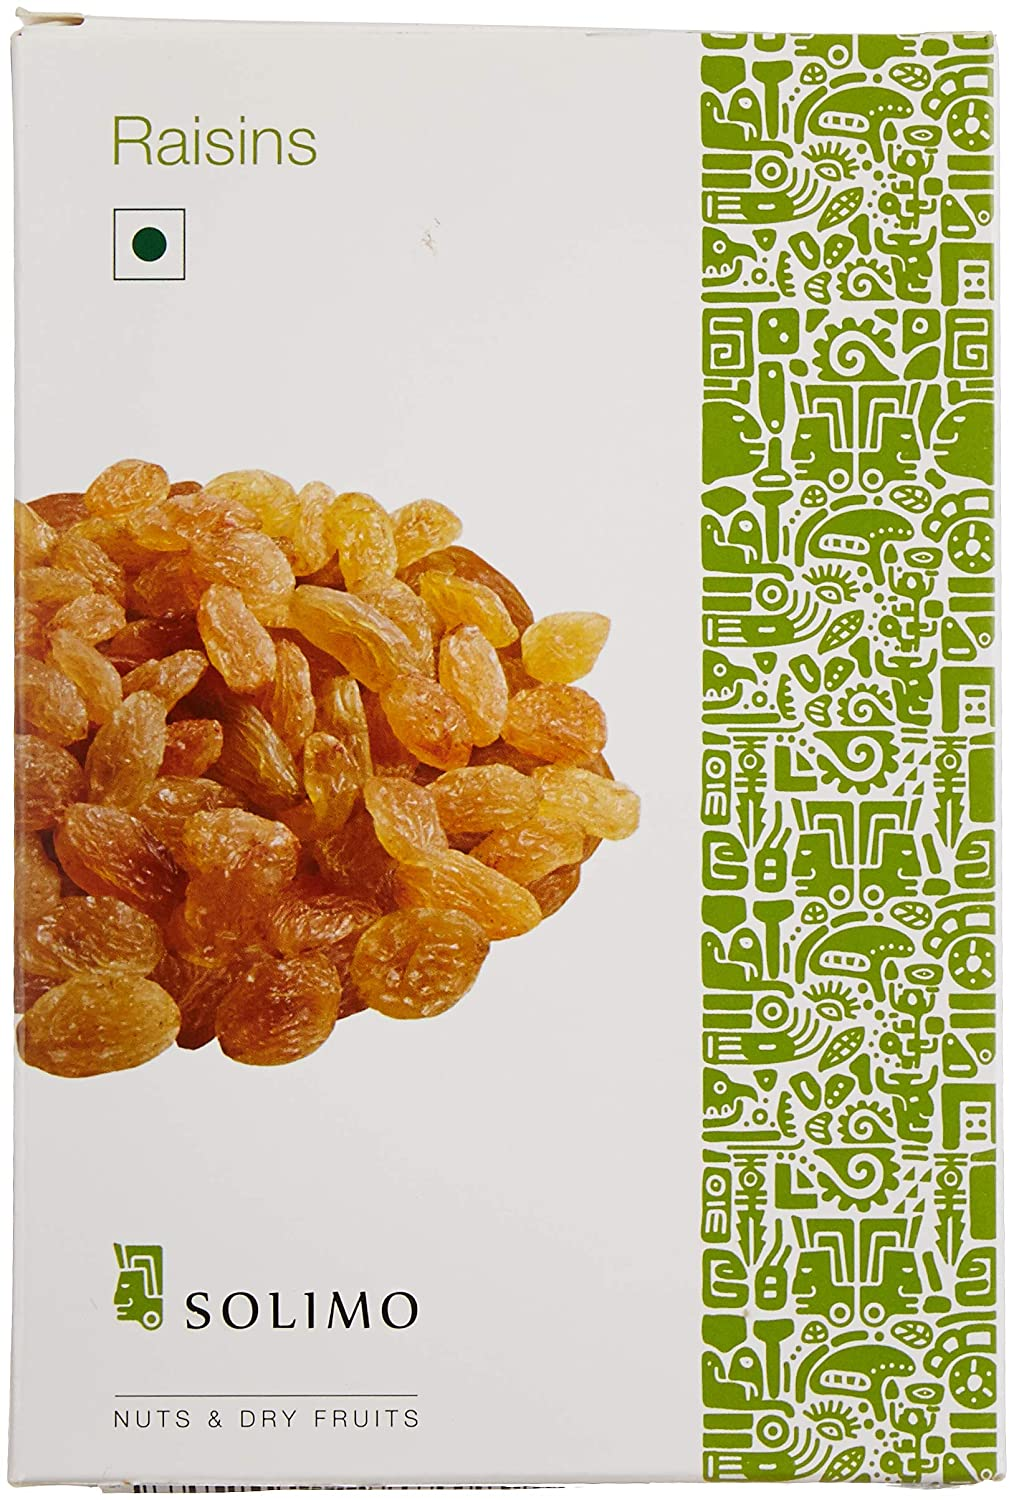 5. Amazon Brand - Solimo Premium Raisins